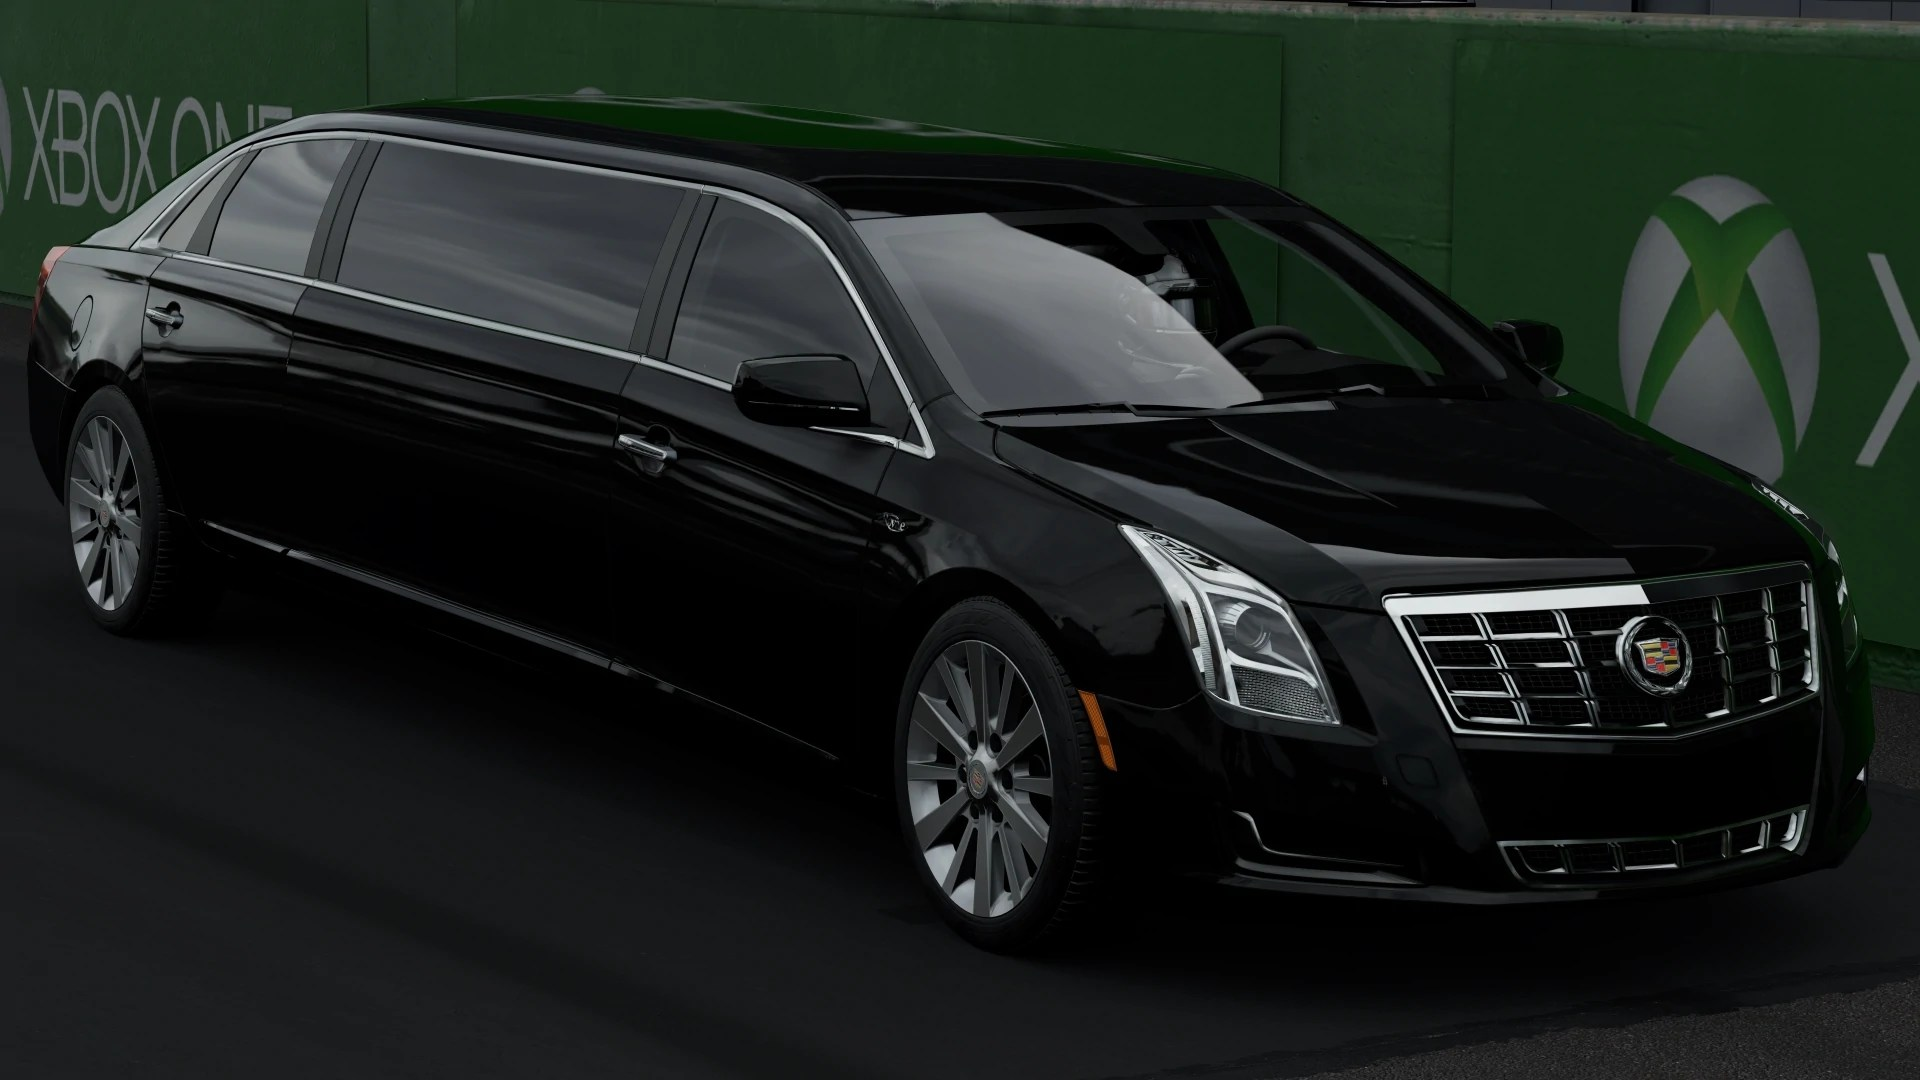 Fast And The Furious 6 Cars Wallpaper Cadillac Xts Limousine Forza Motorsport Wiki Fandom